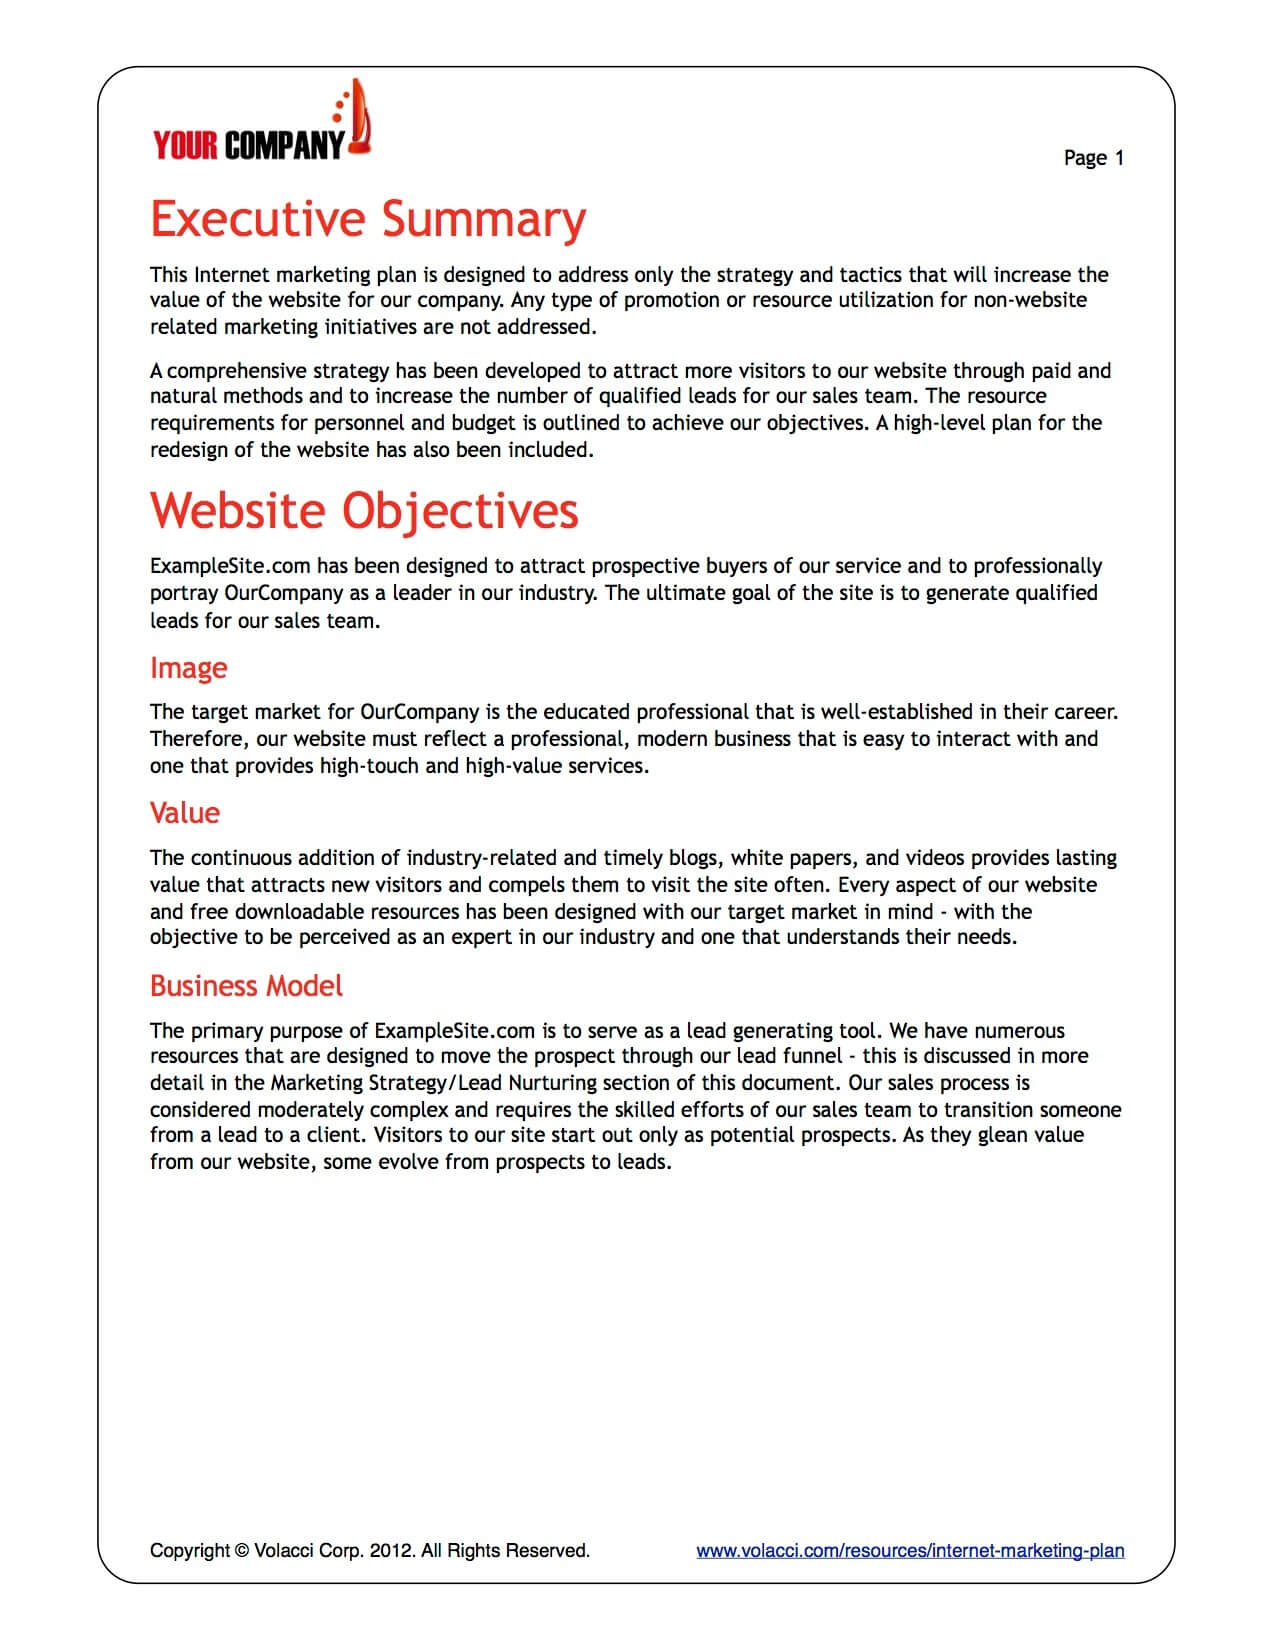 Growthinks Ultimate Business Plan Template Reviews Of K Free Intended For Business Plan Template Reviews